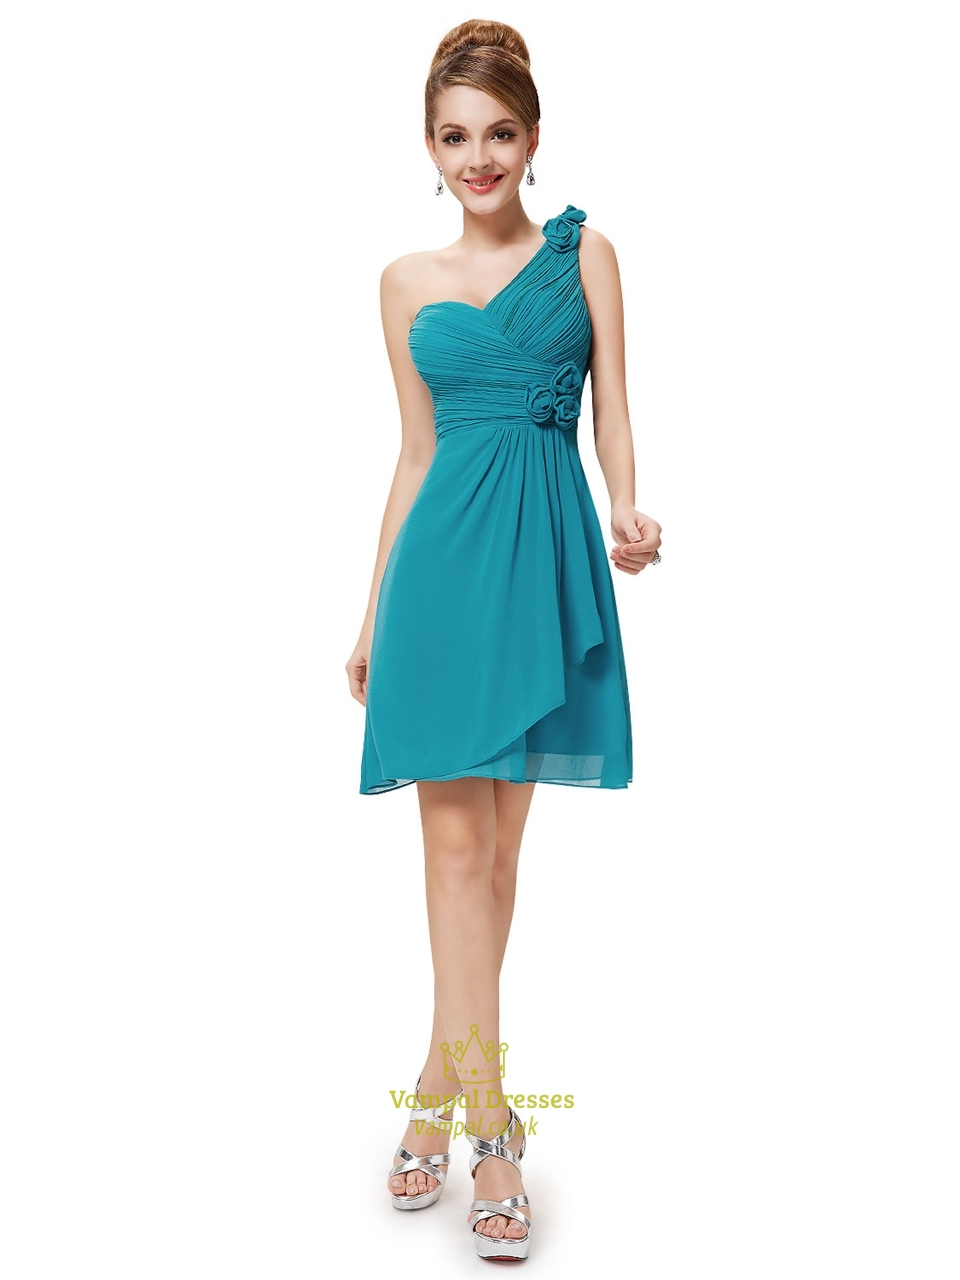 Teal Blue Colored Cocktail Dresses - Fancy Bridesmaid Dresses